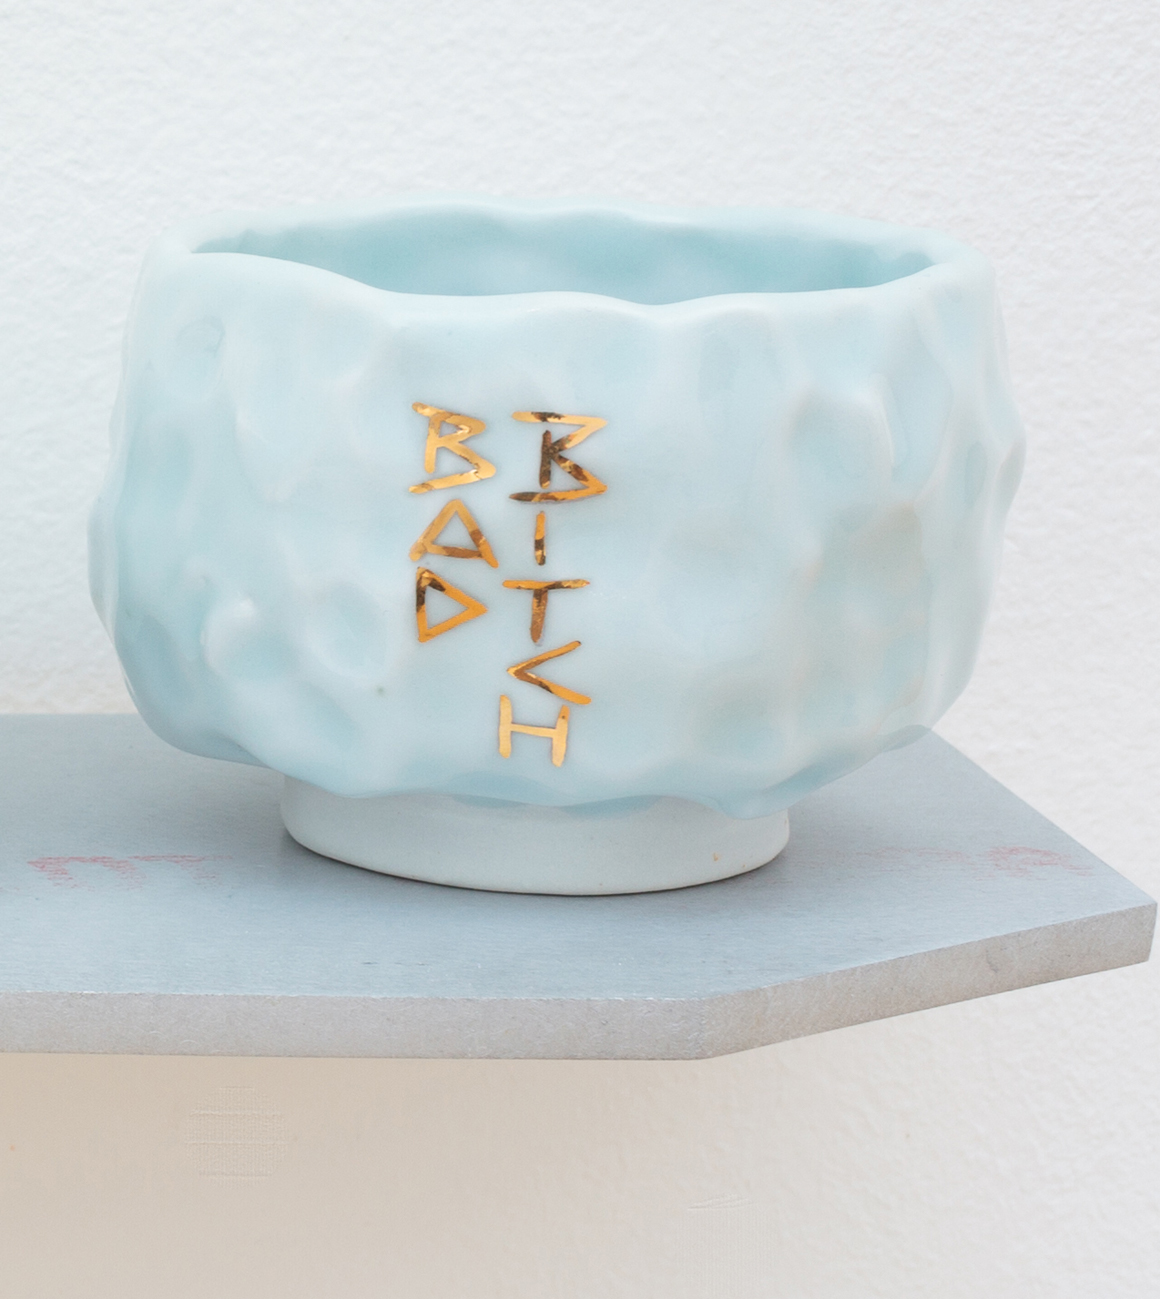 <p><em>Bad Bitch Cup (1)</em><span class='media'>Glazed porcelain, gold luster, aluminum, Sculpey clay</span>2.5 x 3 x 3 in  (6.4 x 7.6 x 7.6 cm)<br>2016<br><a class='inquire' href='mailto:info@gildargallery.com?subject=Artwork Inquiry PWAS0002&body=I am interested in finding out more about Bad Bitch Cup (1) by Patrice Renee Washington'>Inquire</a></p>